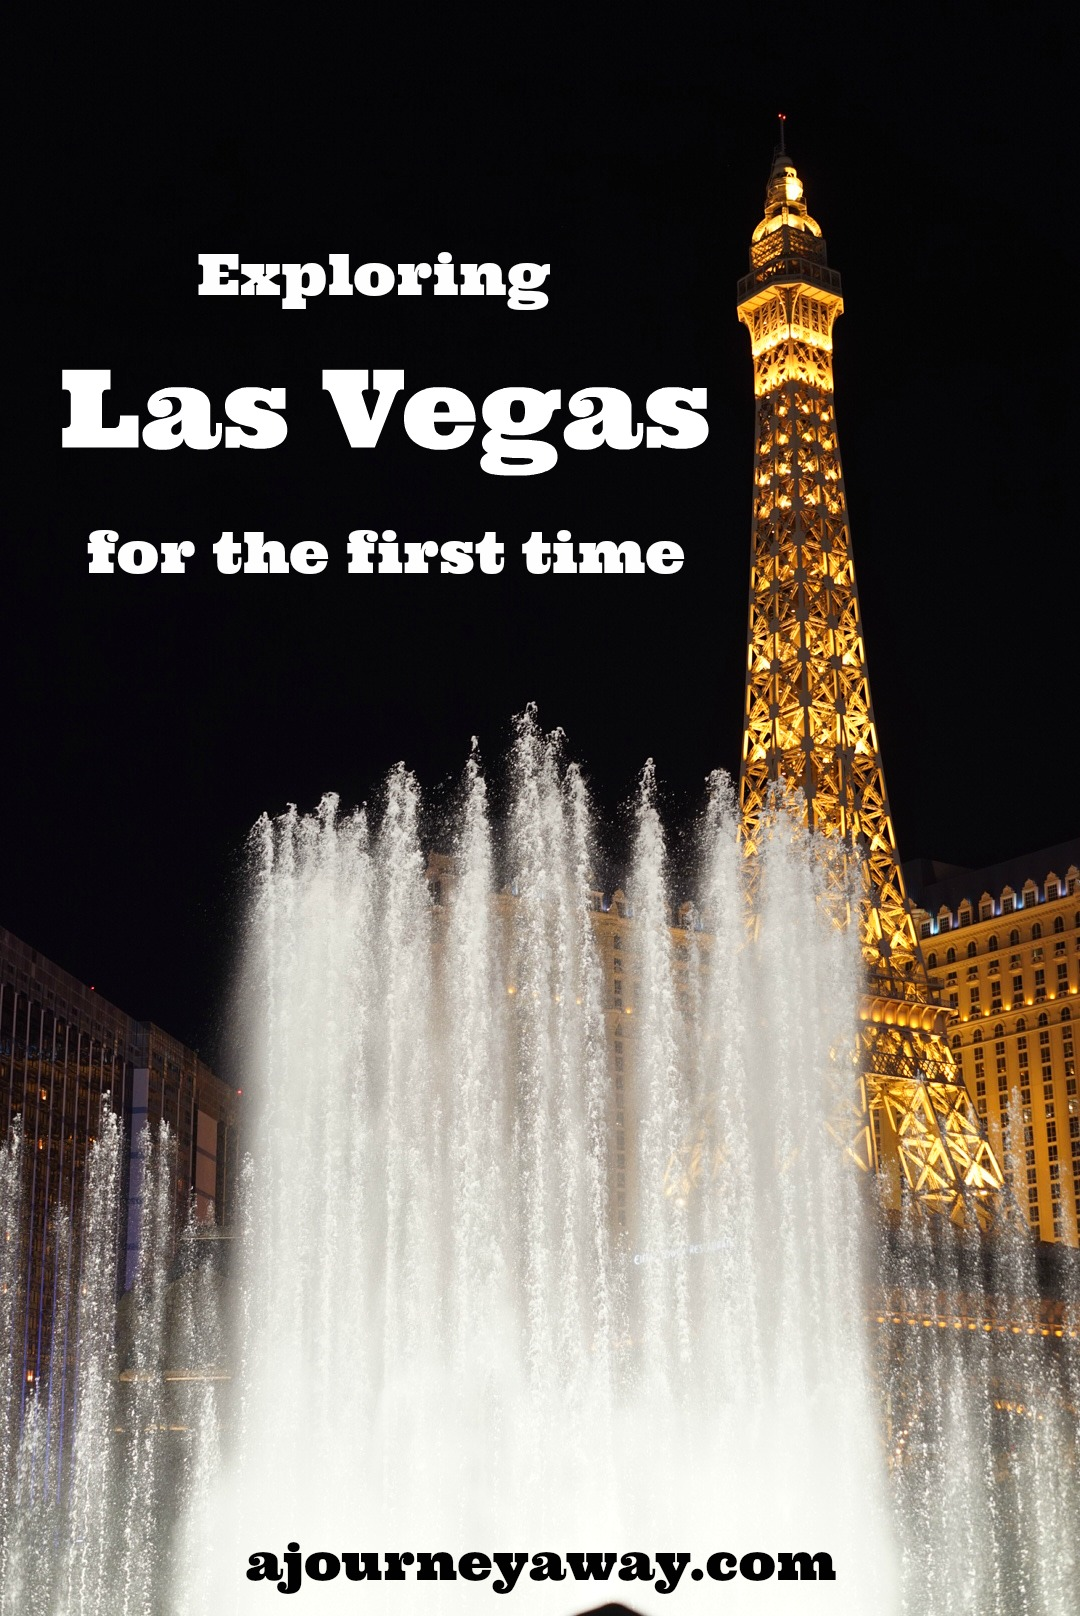 Exploring Las Vegas for the first time